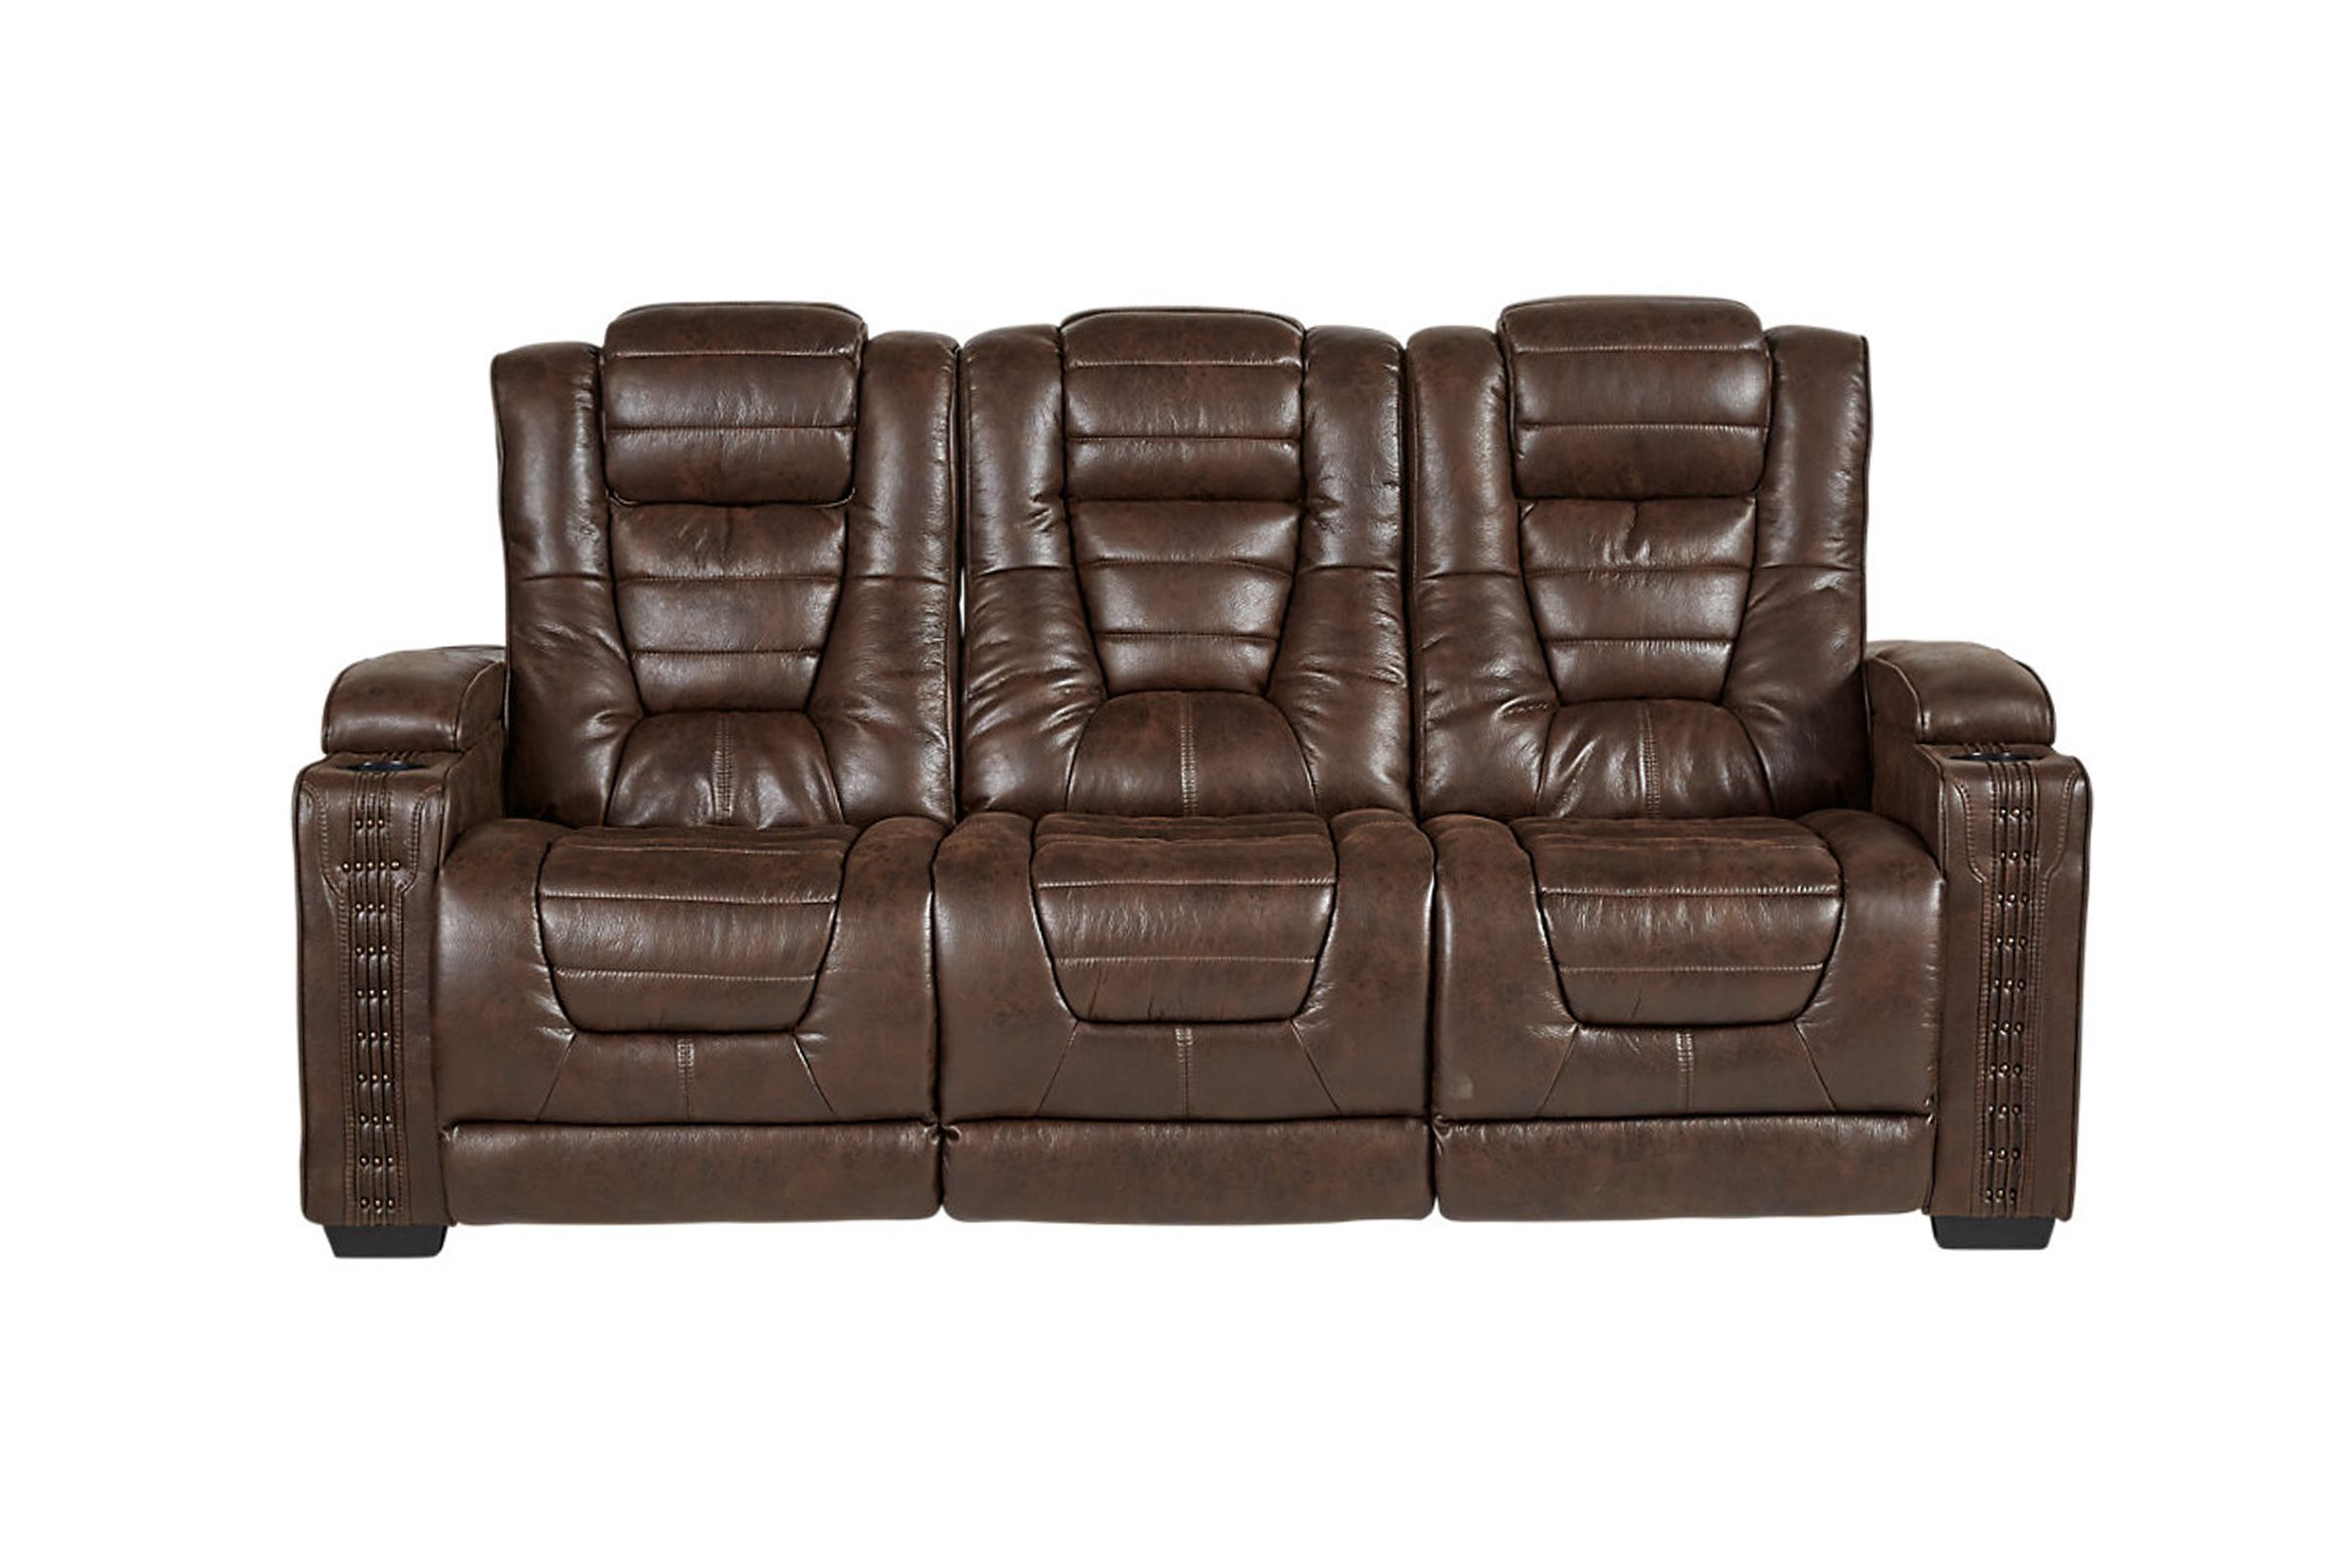 Bastille power reclining sofa with drop down table highway to home power reclining microfiber sofa with drop down table now 156999 125599 we pay your tax geotapseo Choice Image